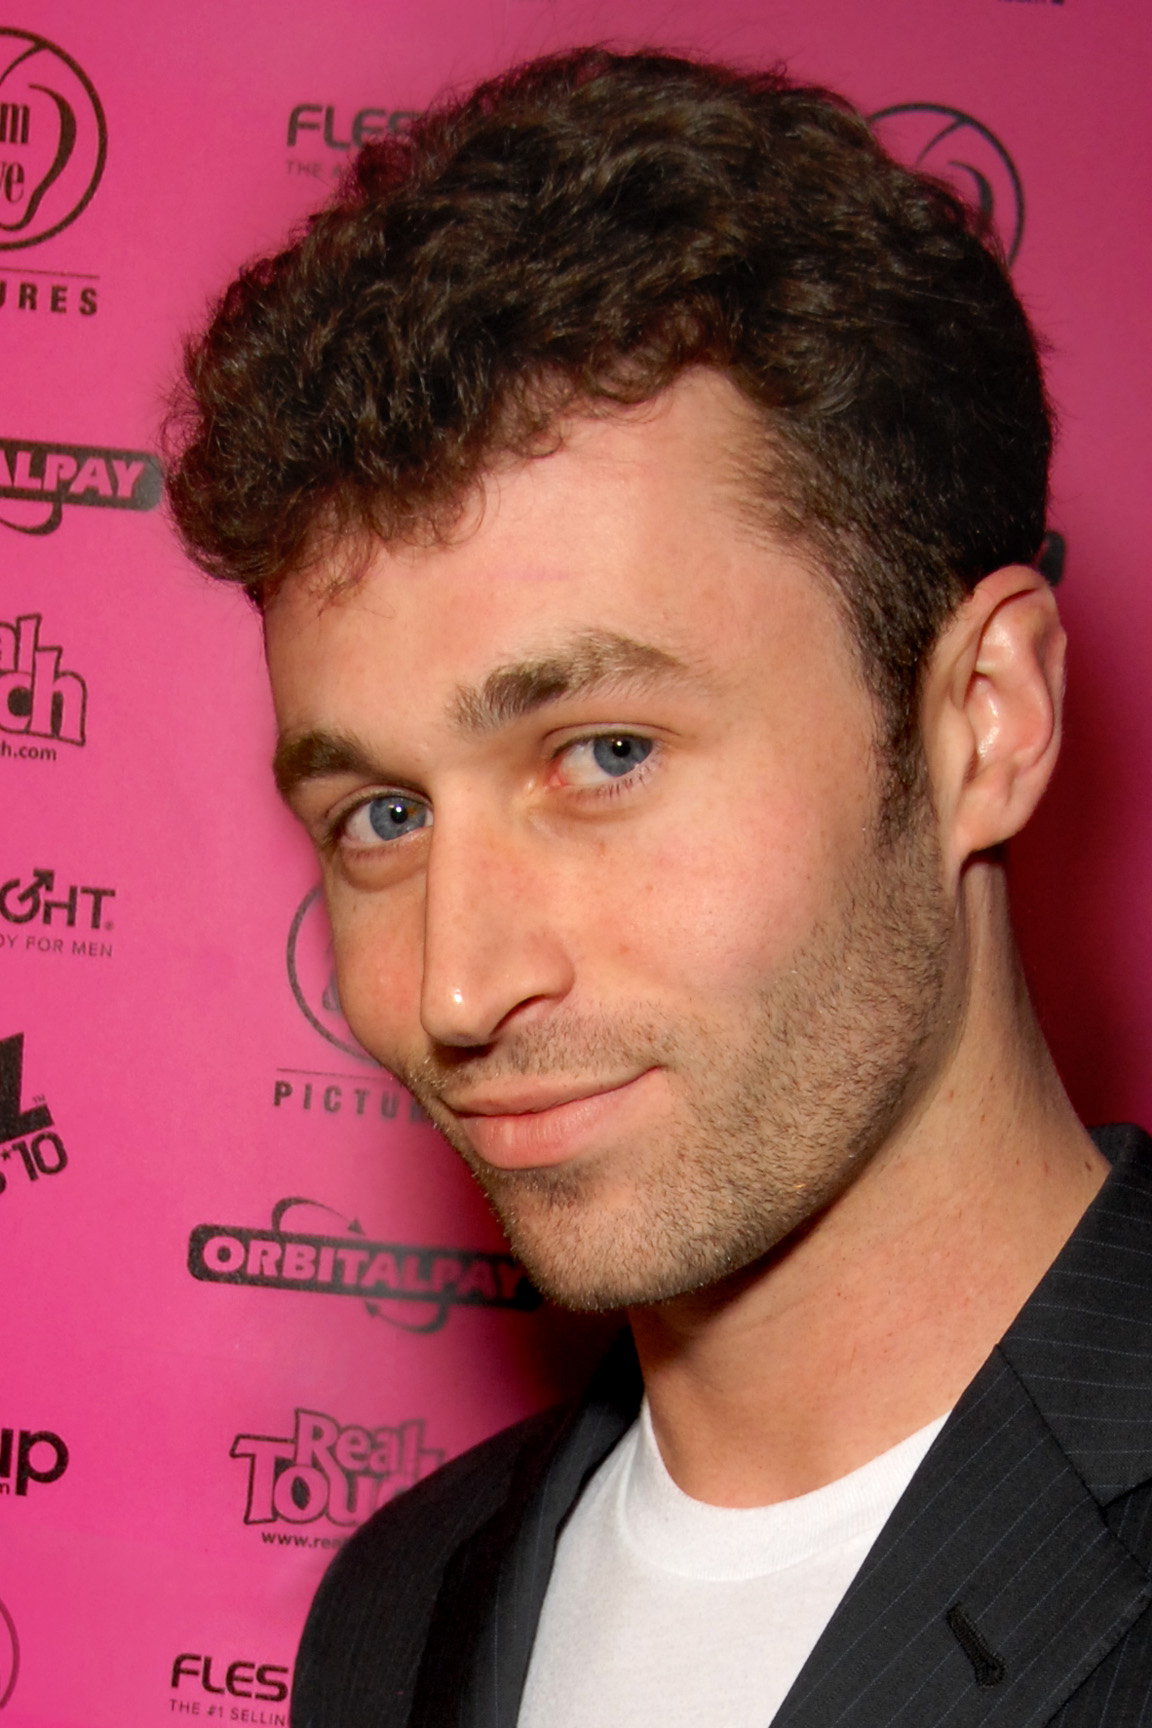 James deen porno film